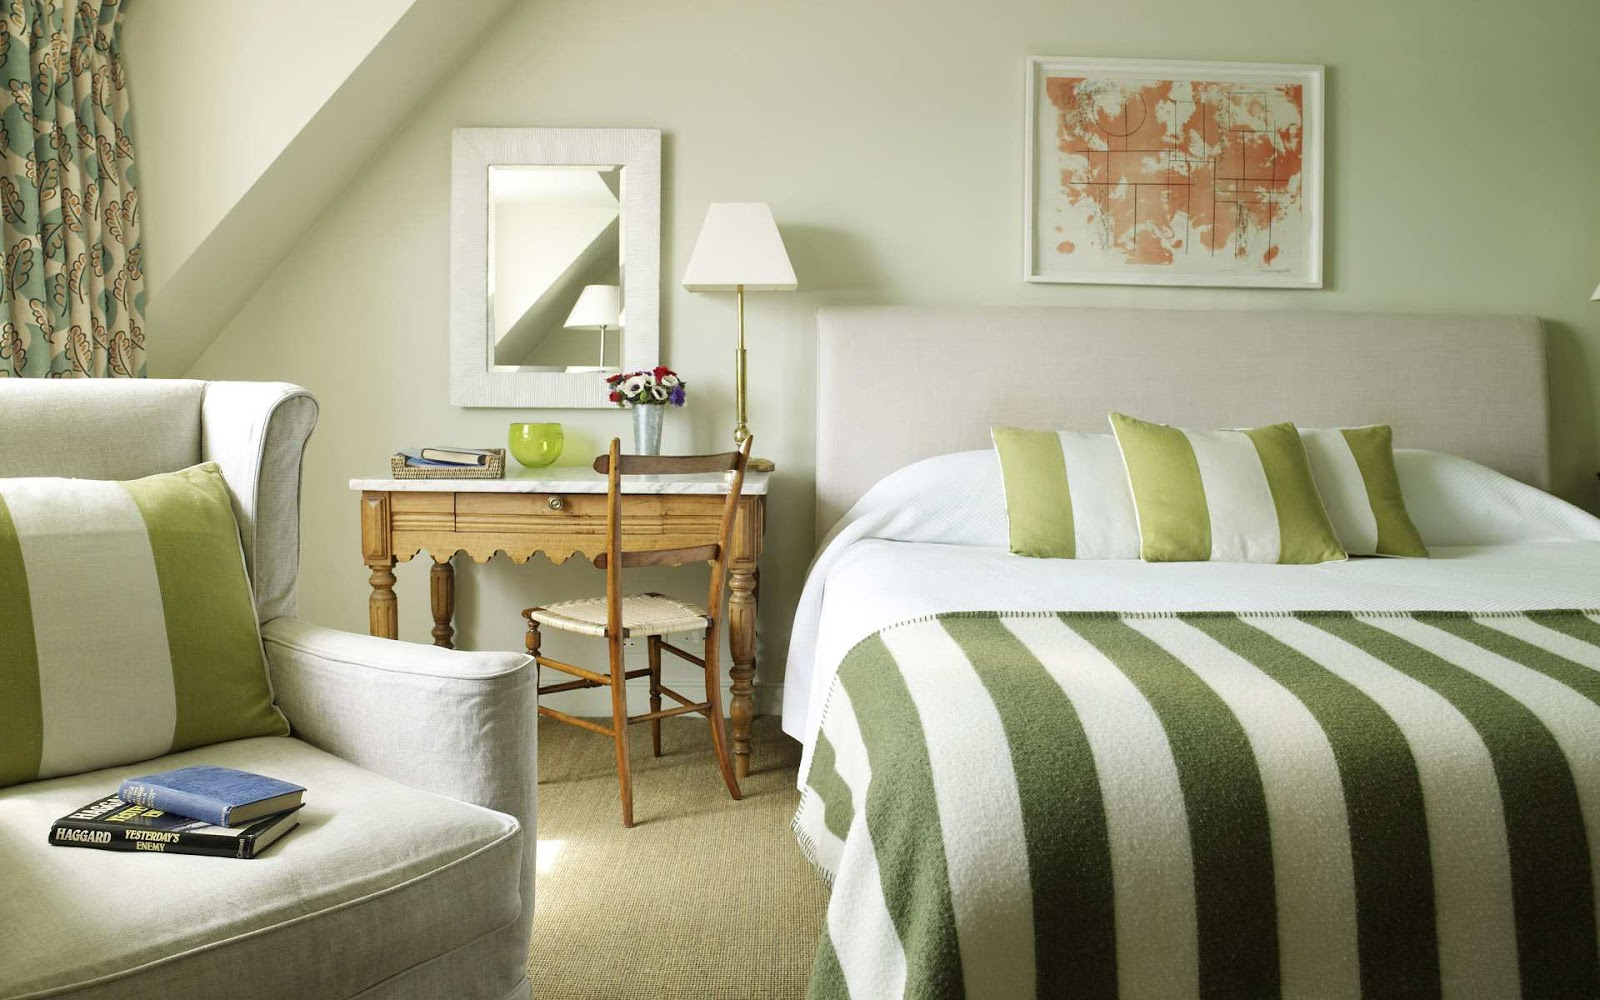 Marta decoycina color verde apuesta por el - Bedroom style for small space model ...